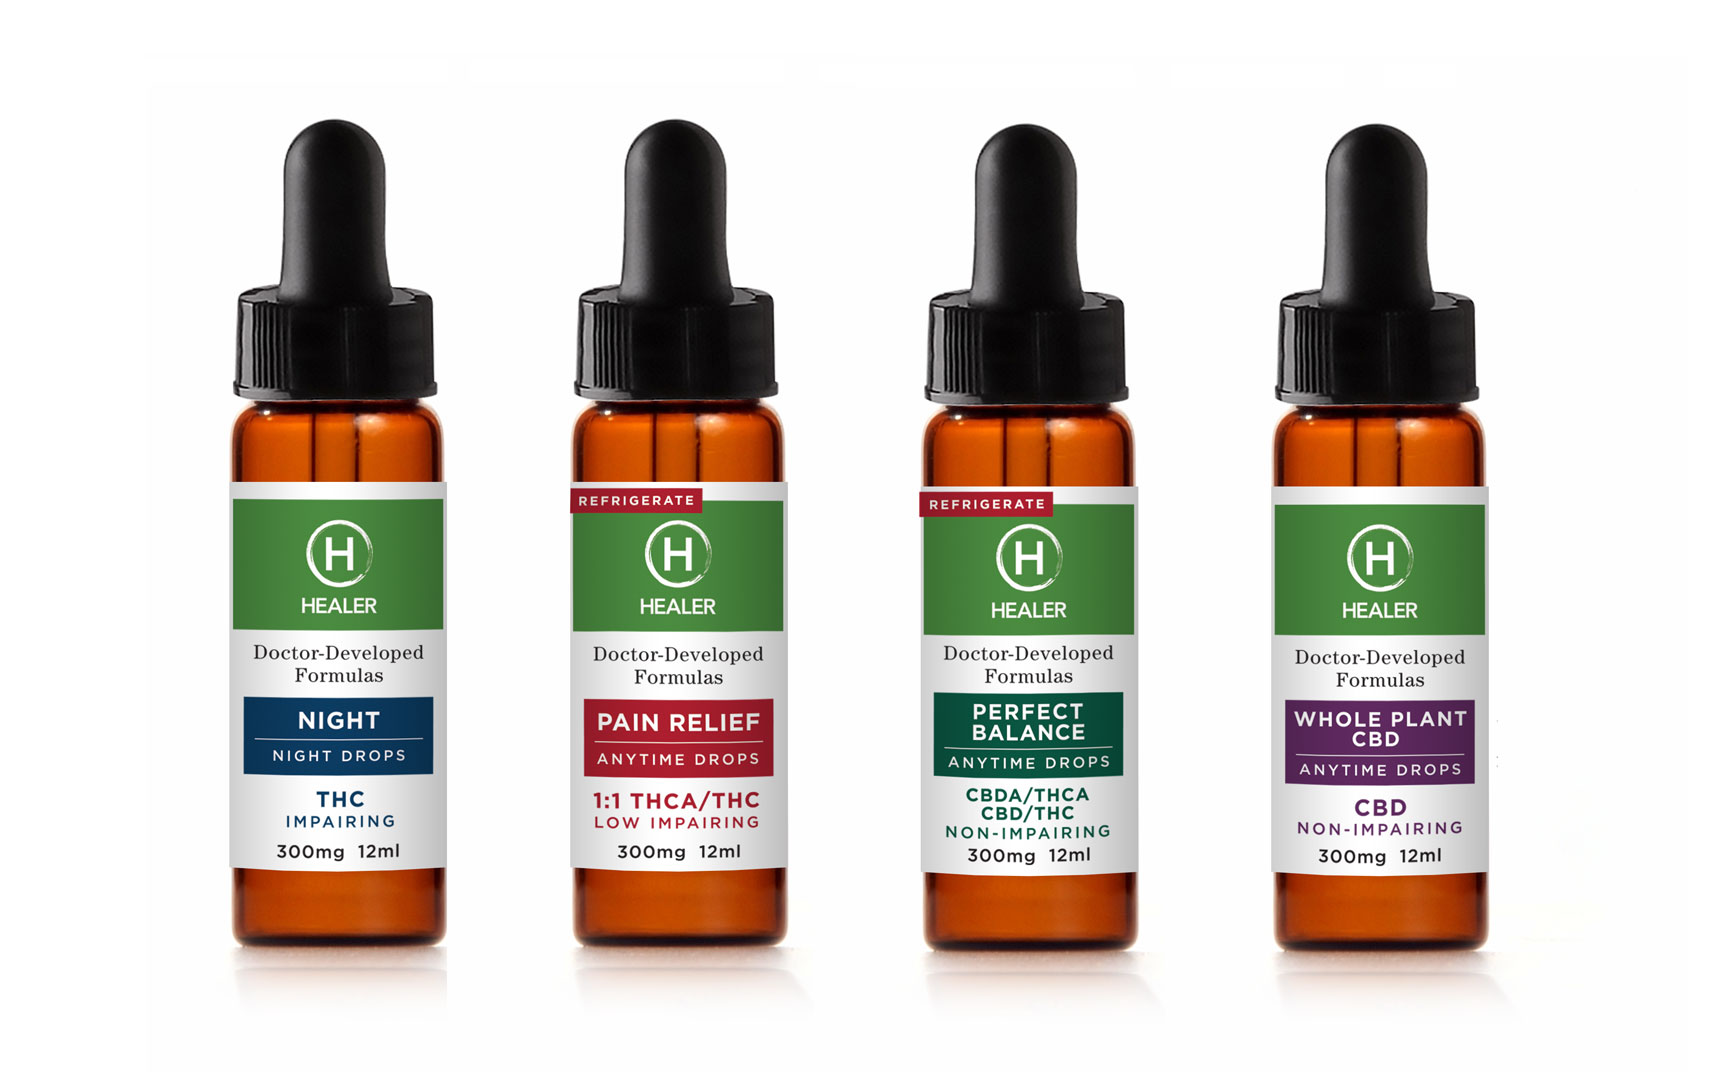 Healer Medical Cannabis Product Drops